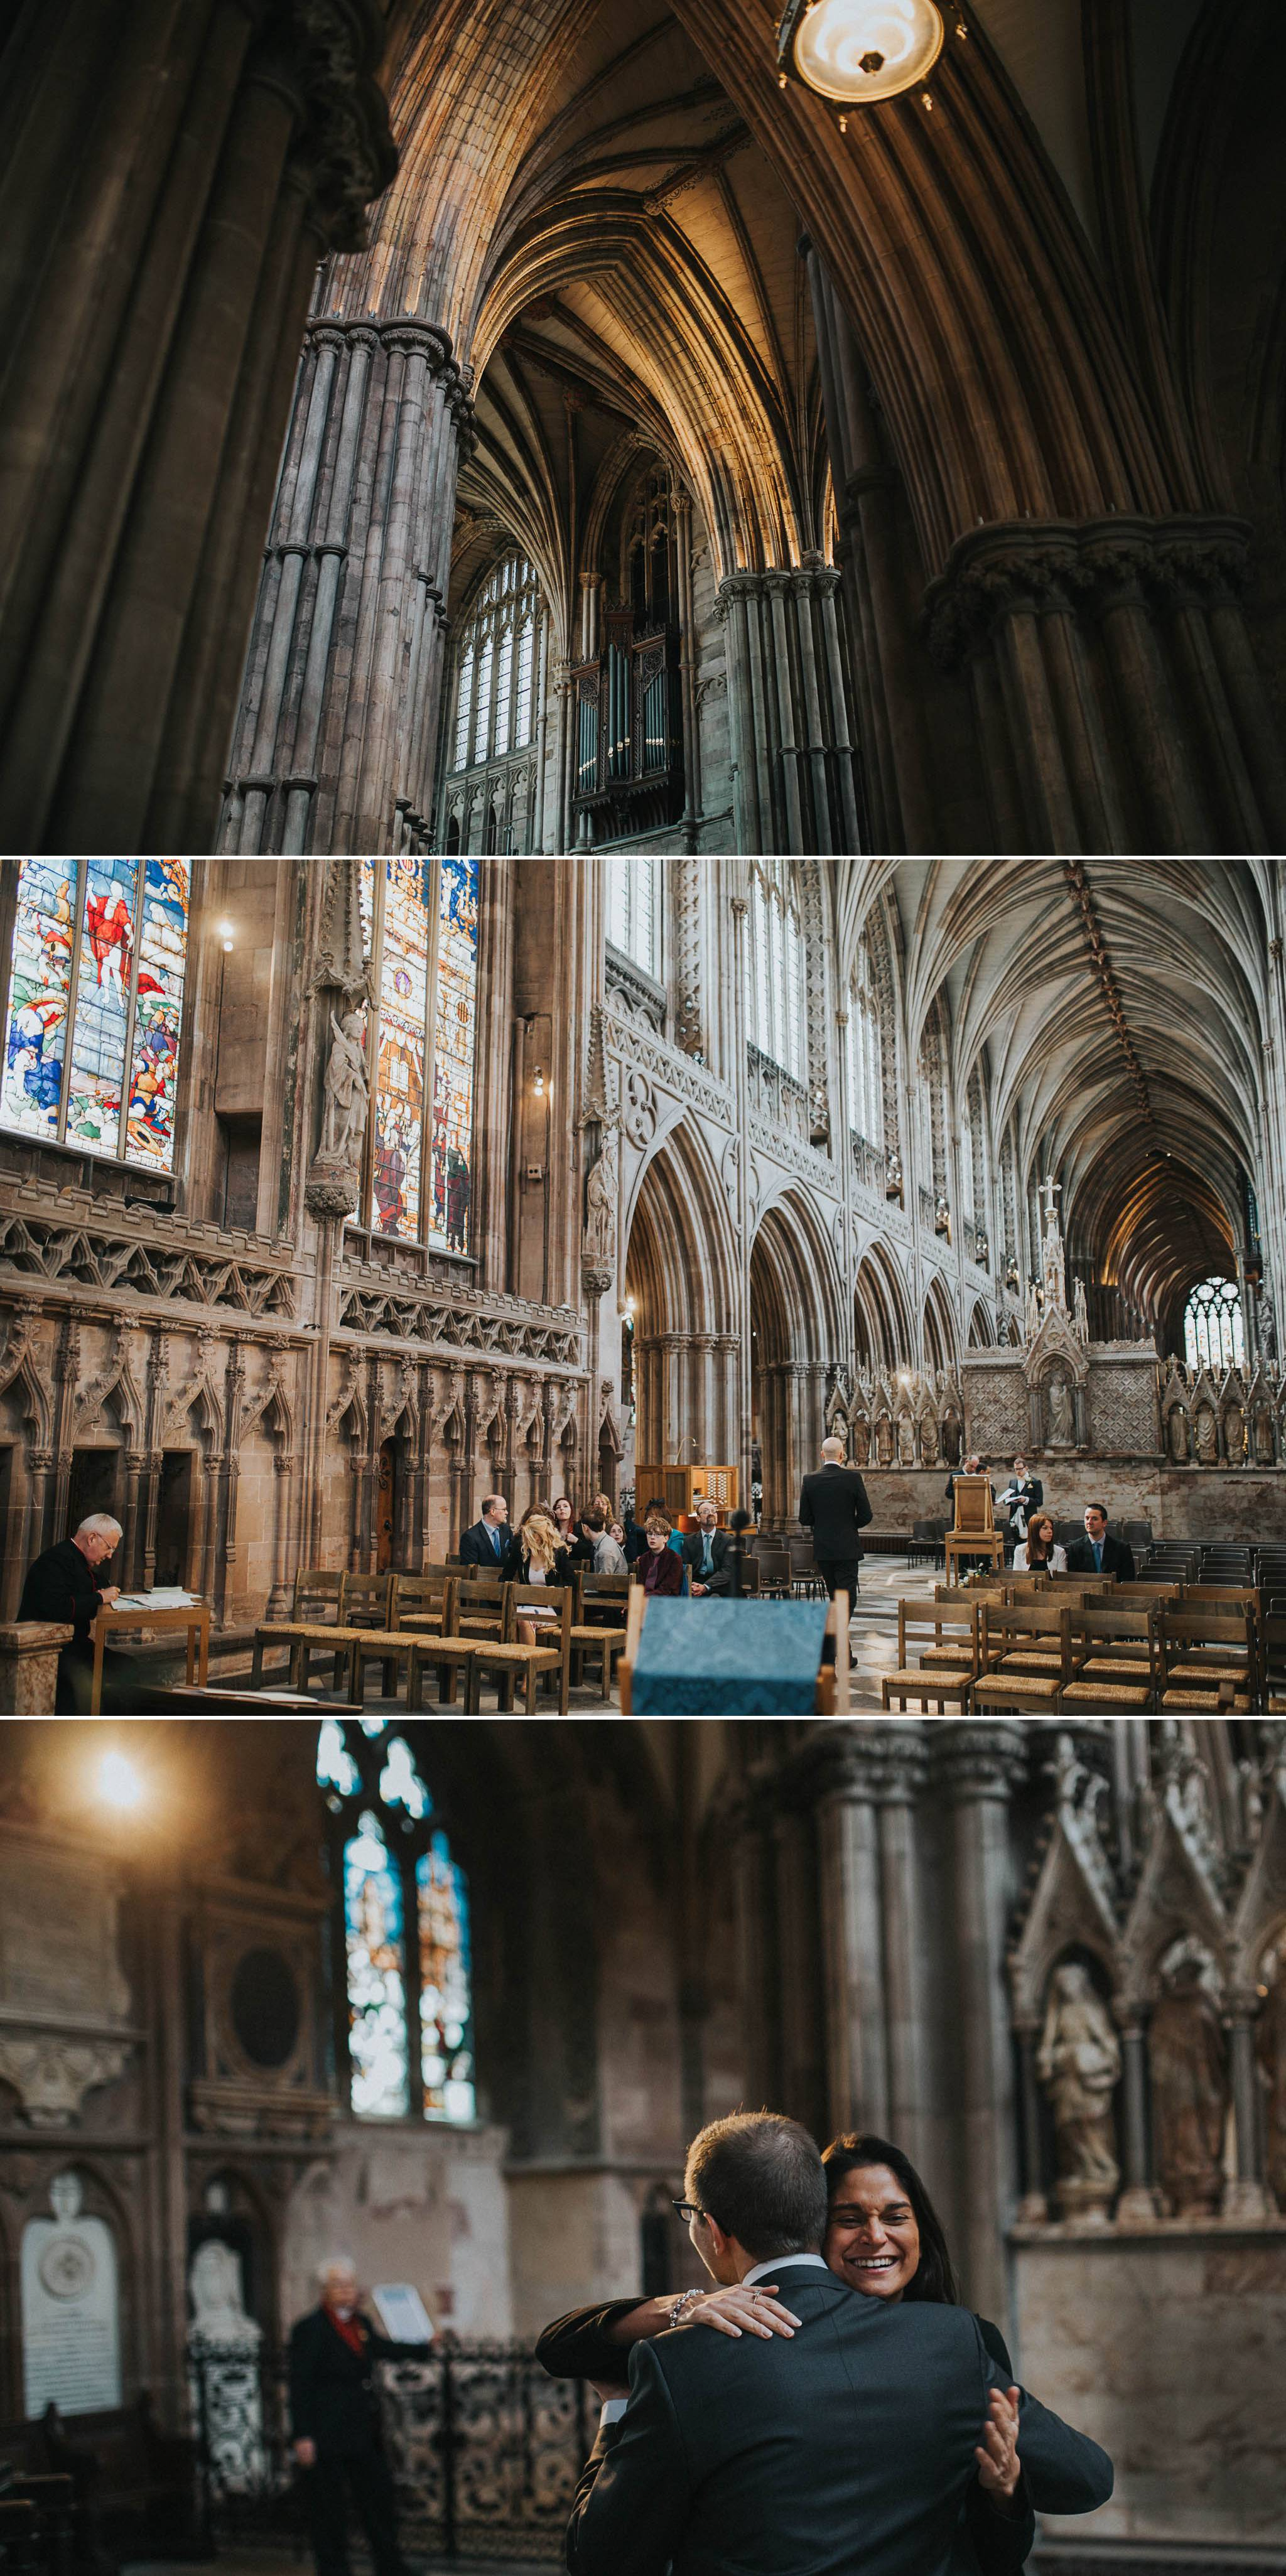 lichfield-cathedral-wedding-photography 3.jpg